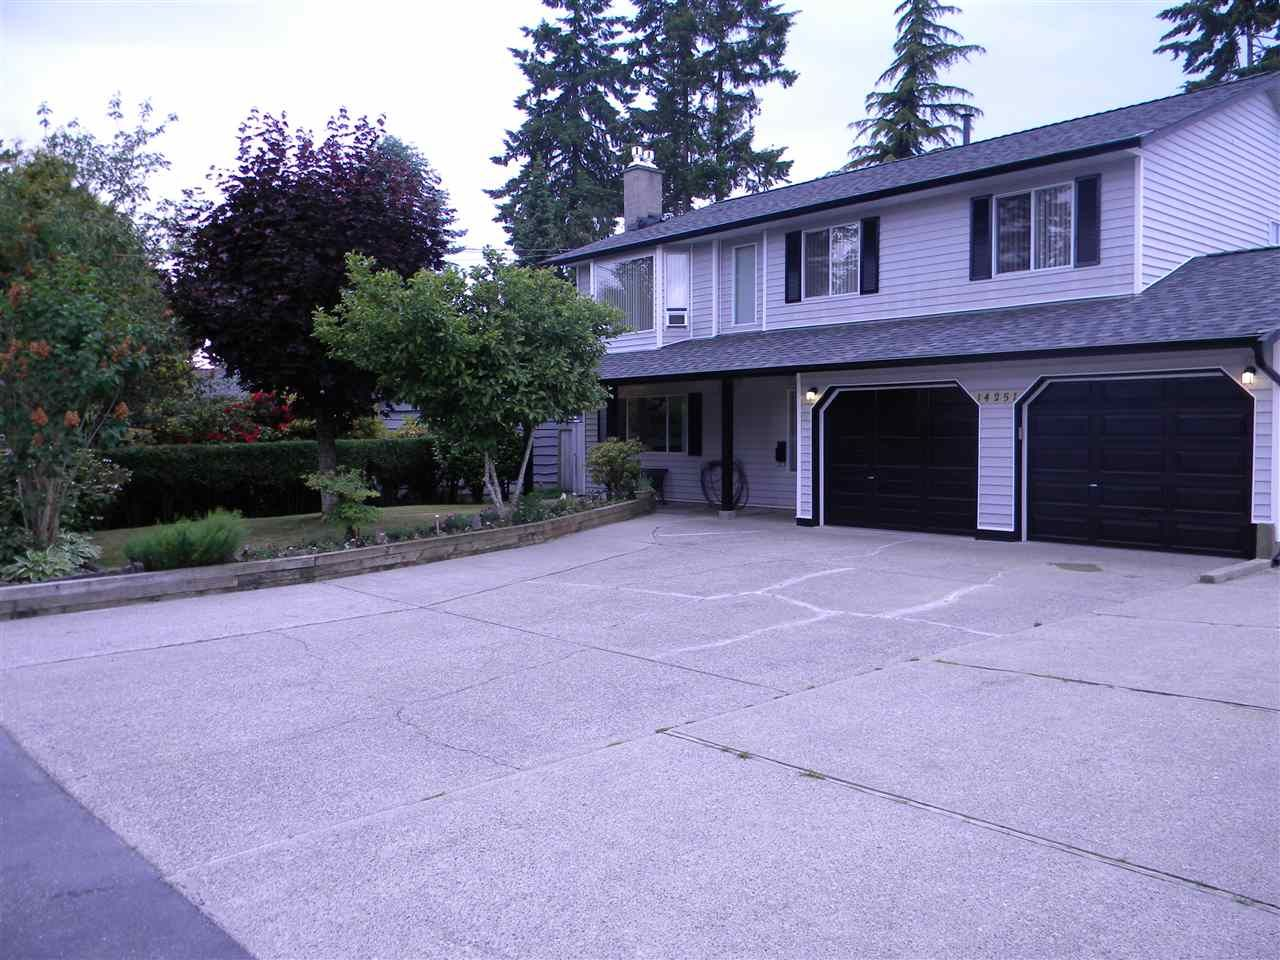 Photo 2: Photos: 14251 71 Avenue in Surrey: East Newton House for sale : MLS®# R2075211